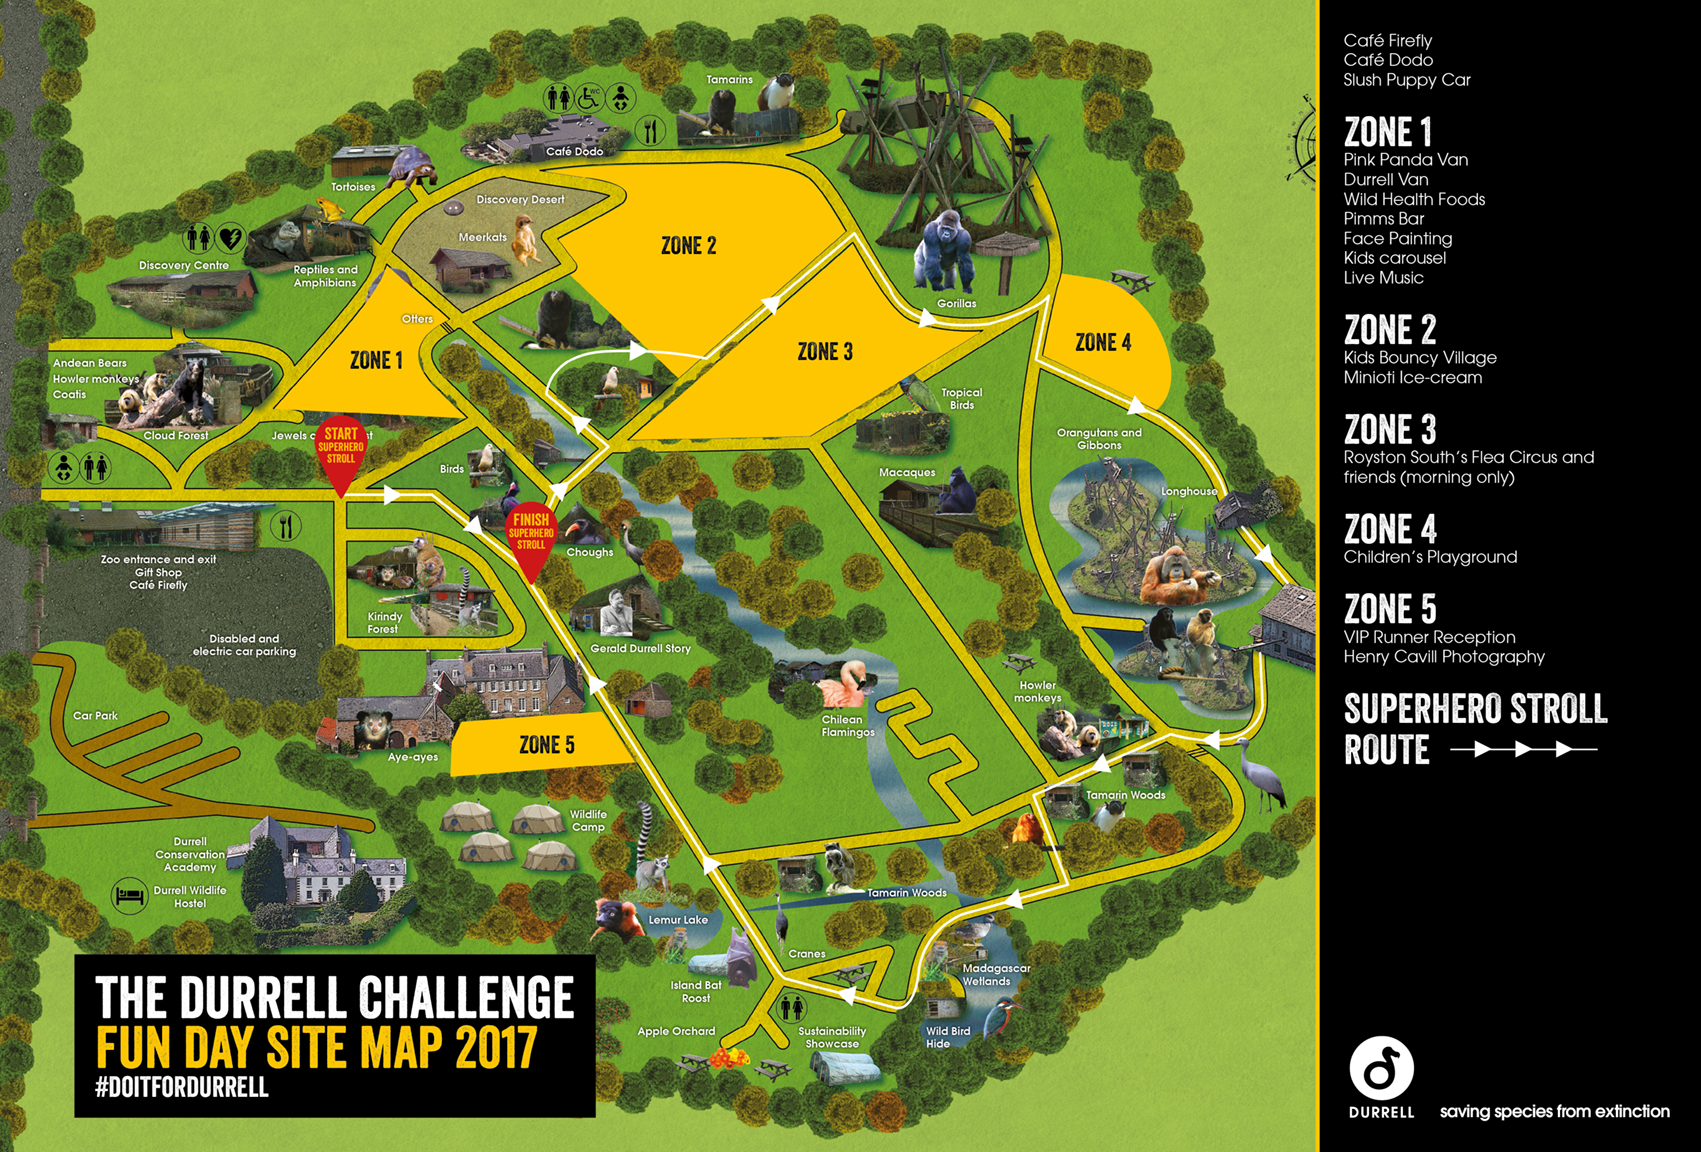 2841 - Durrell Challenge map site map 2017